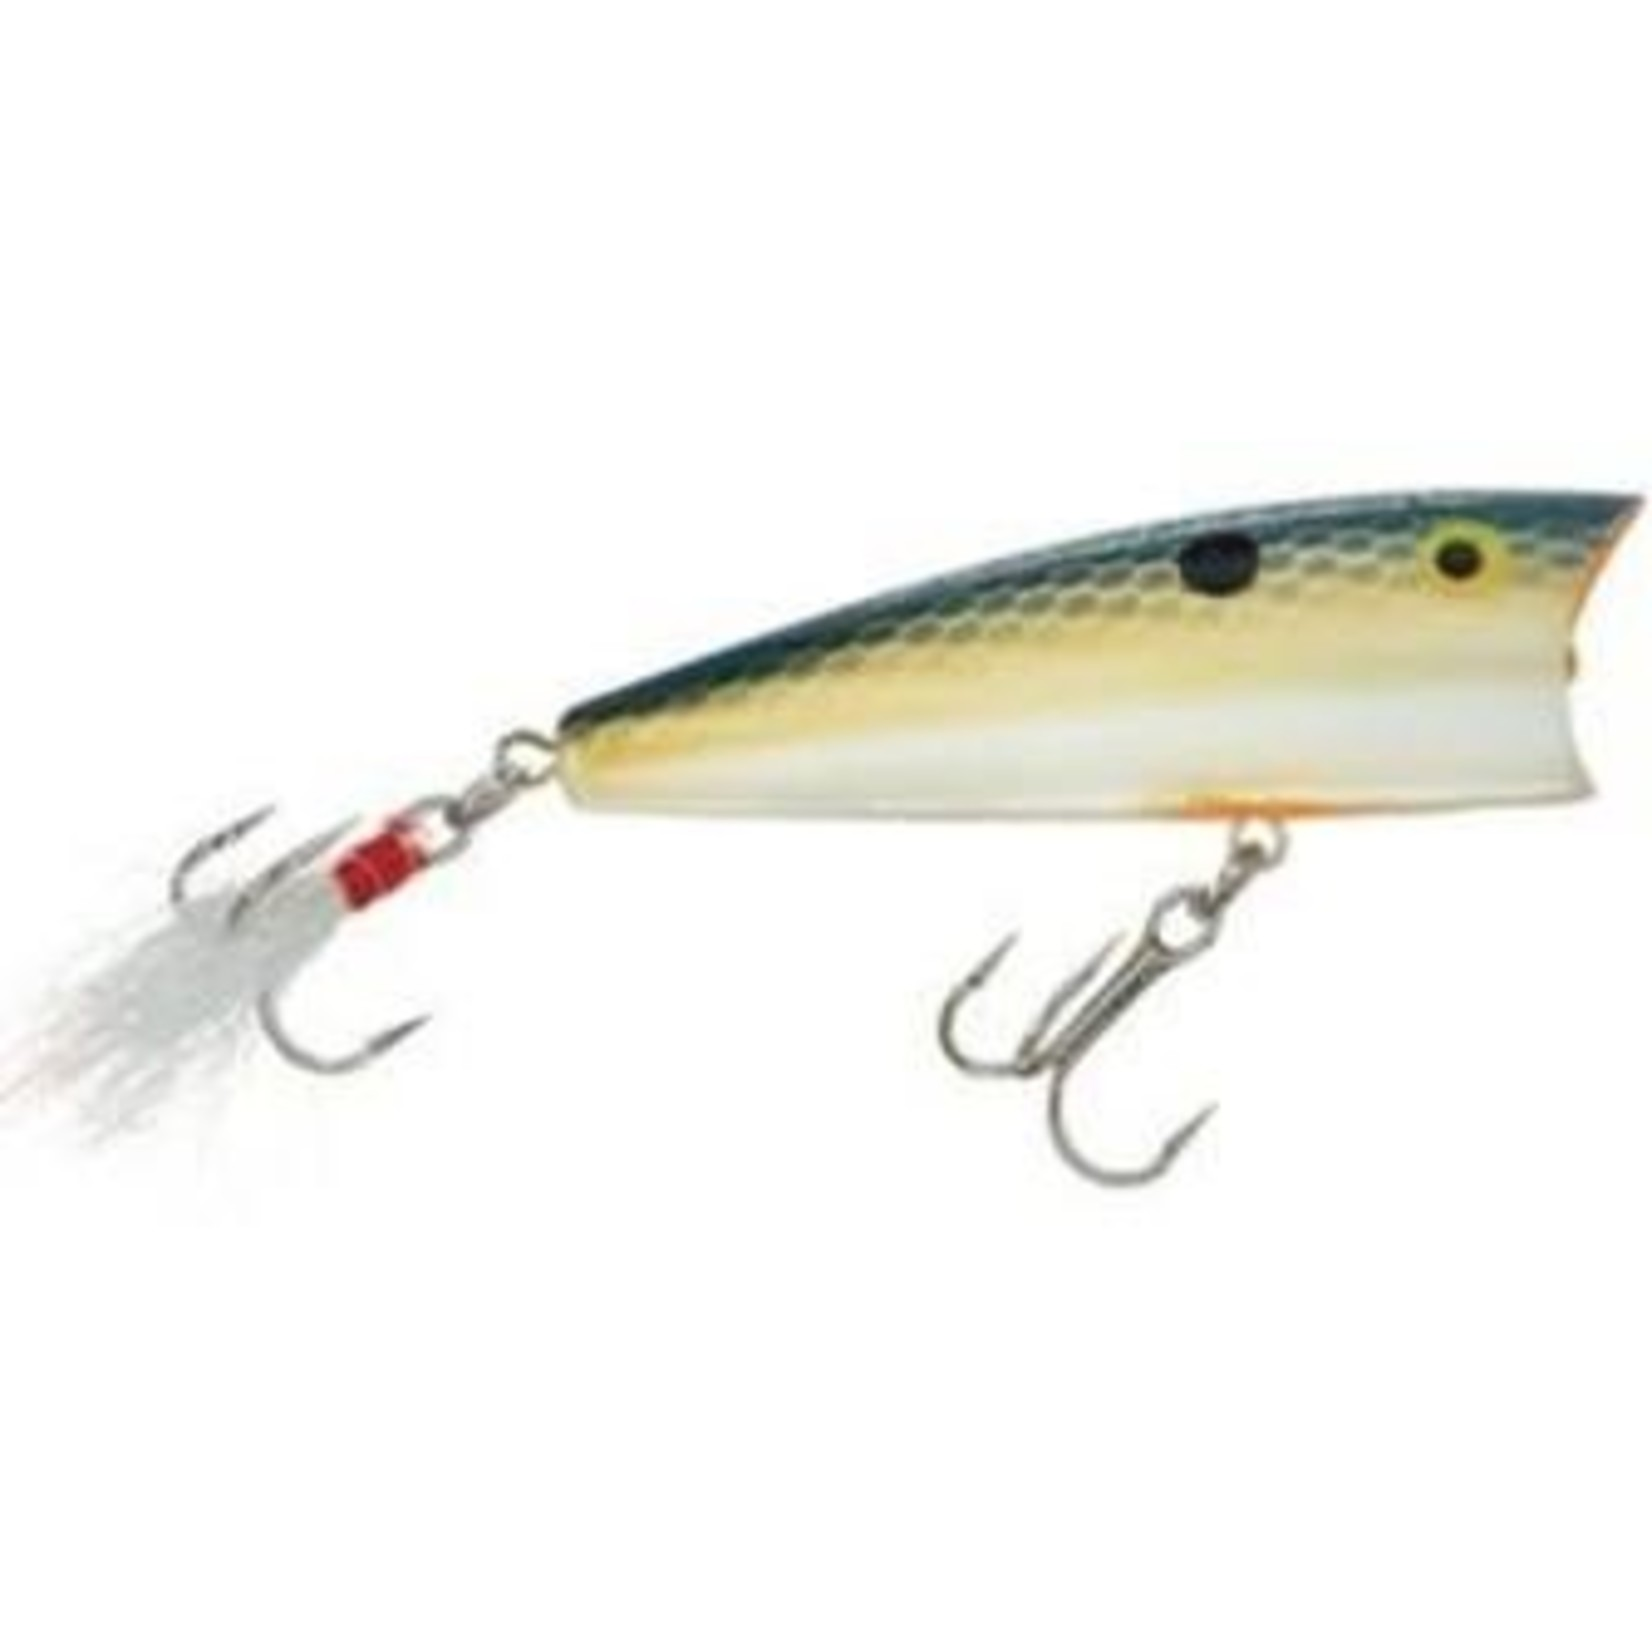 "1/2"", 1/4 oz, Foxy Shad, Floating Rebel P6075 Pop-R Topwater Bait, 2"